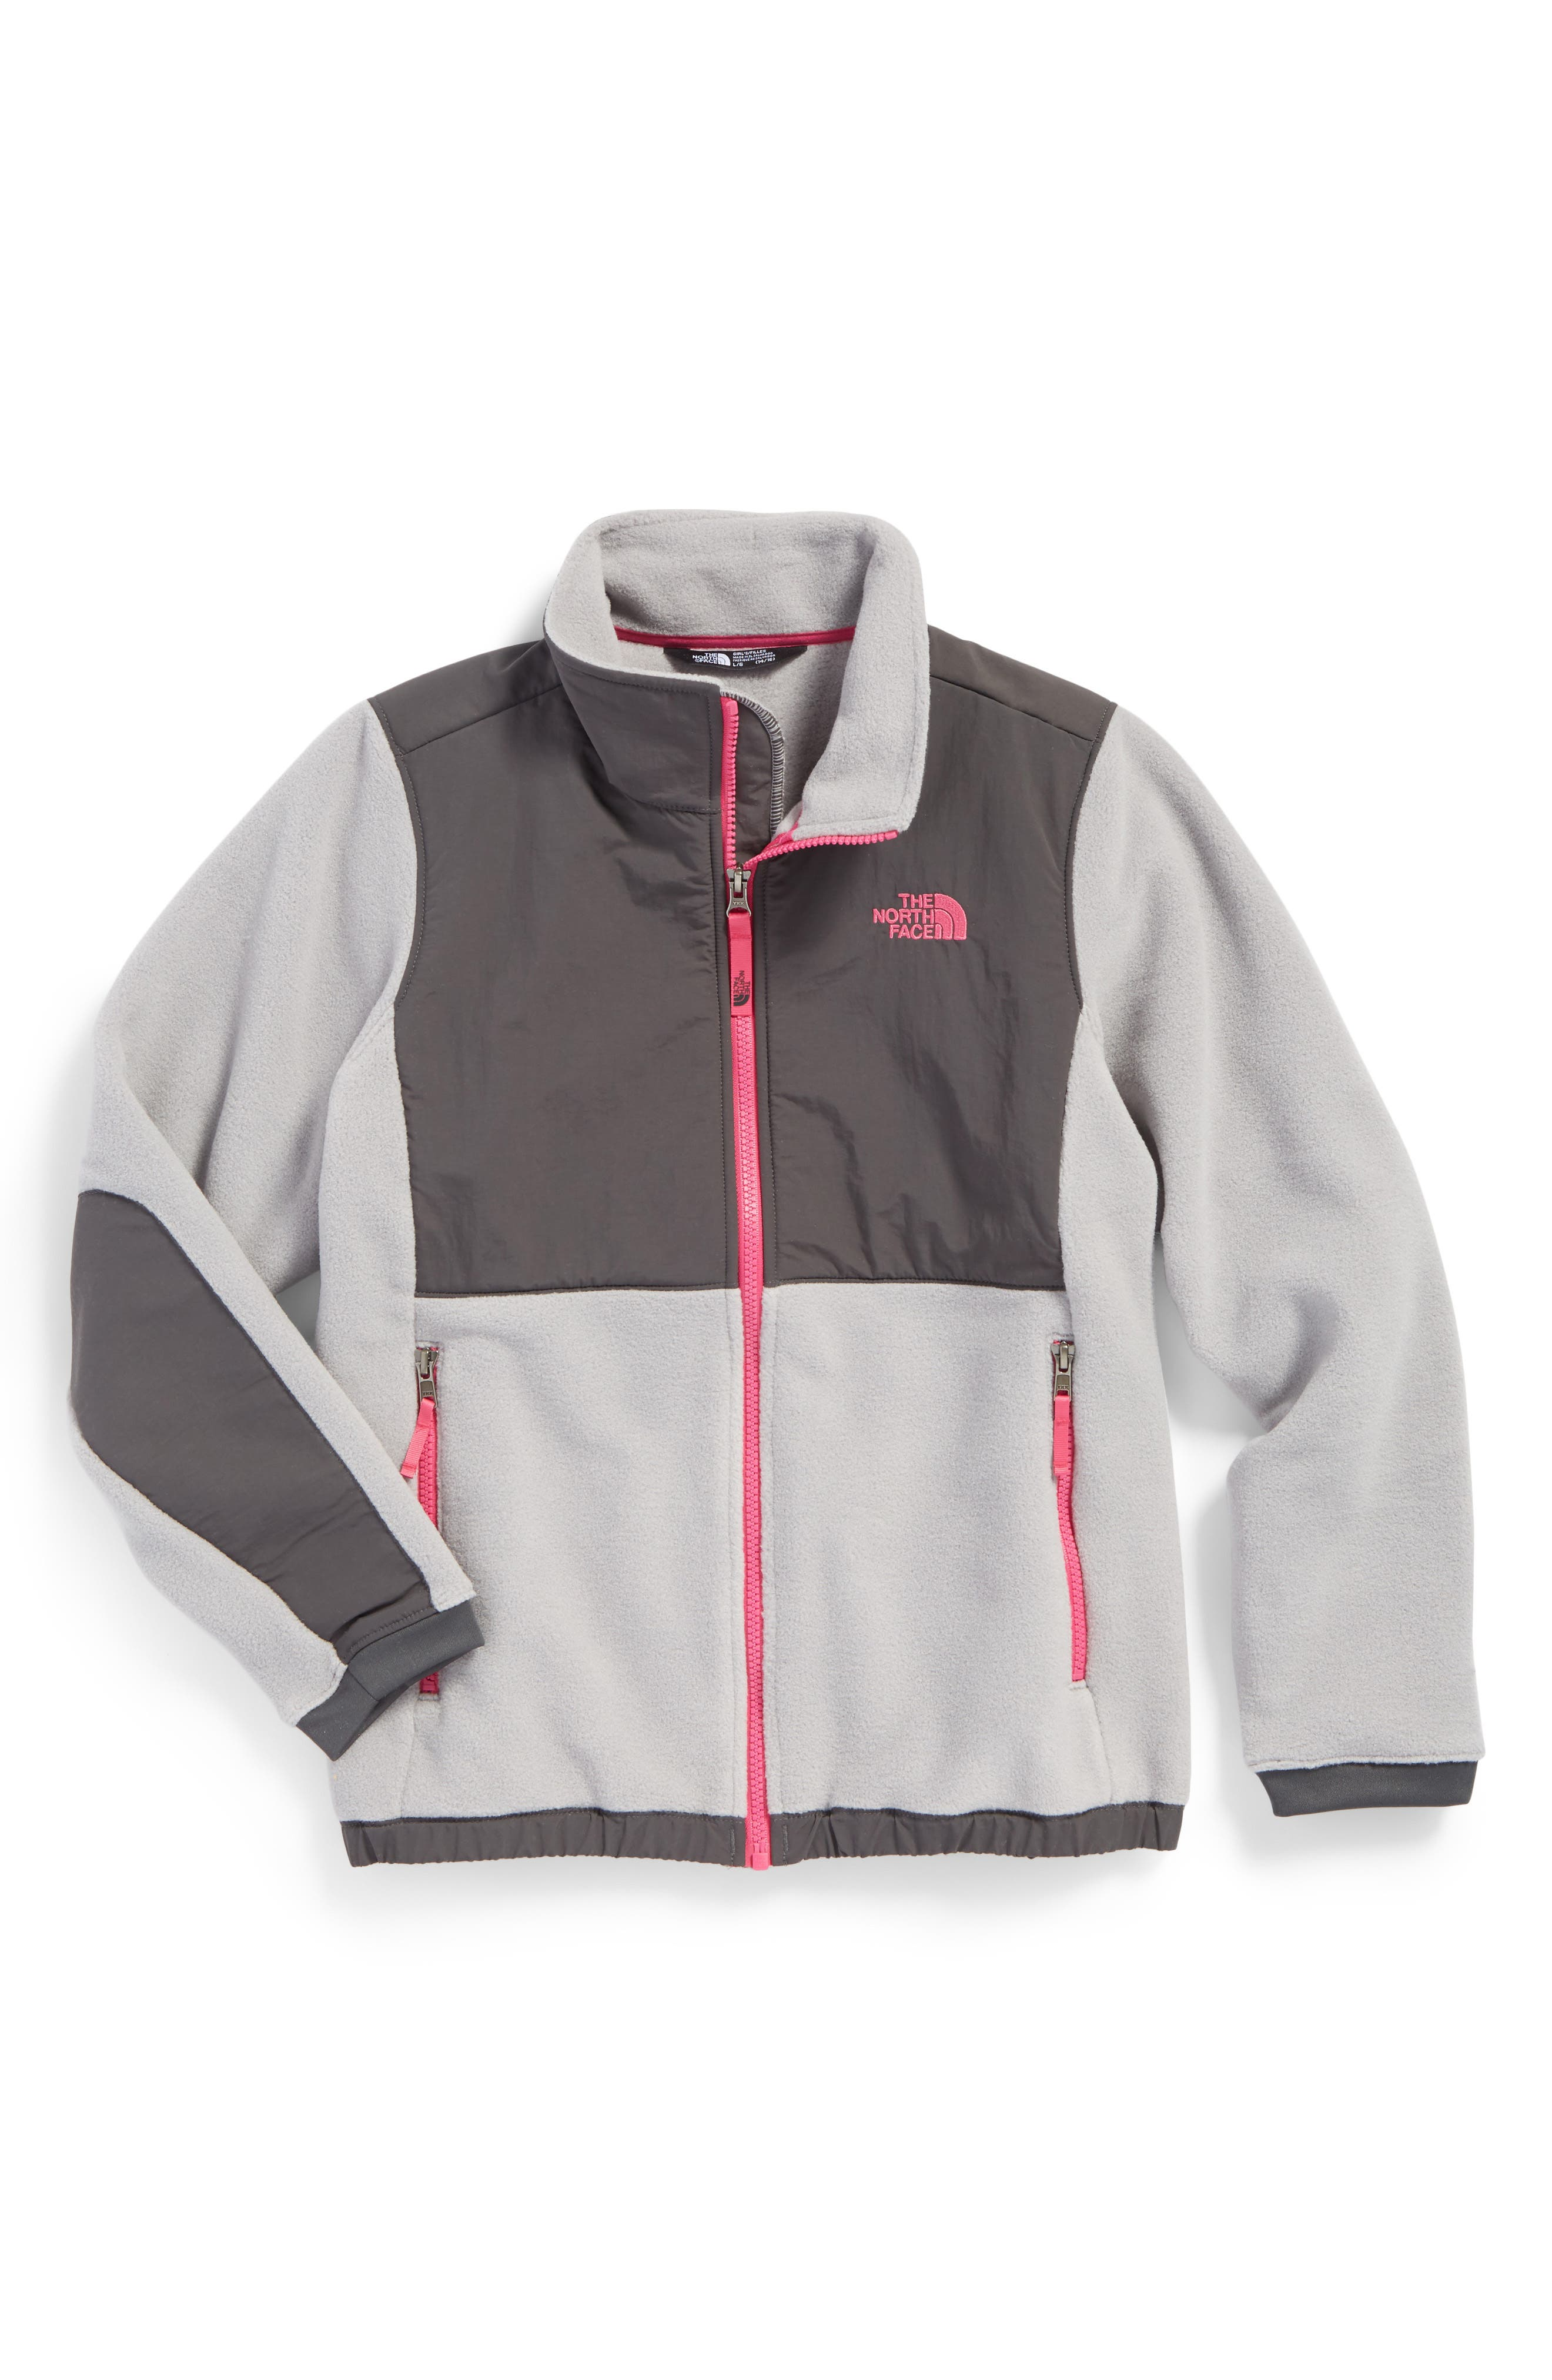 Main Image - The North Face Denali Recycled Fleece Jacket (Big Girls)